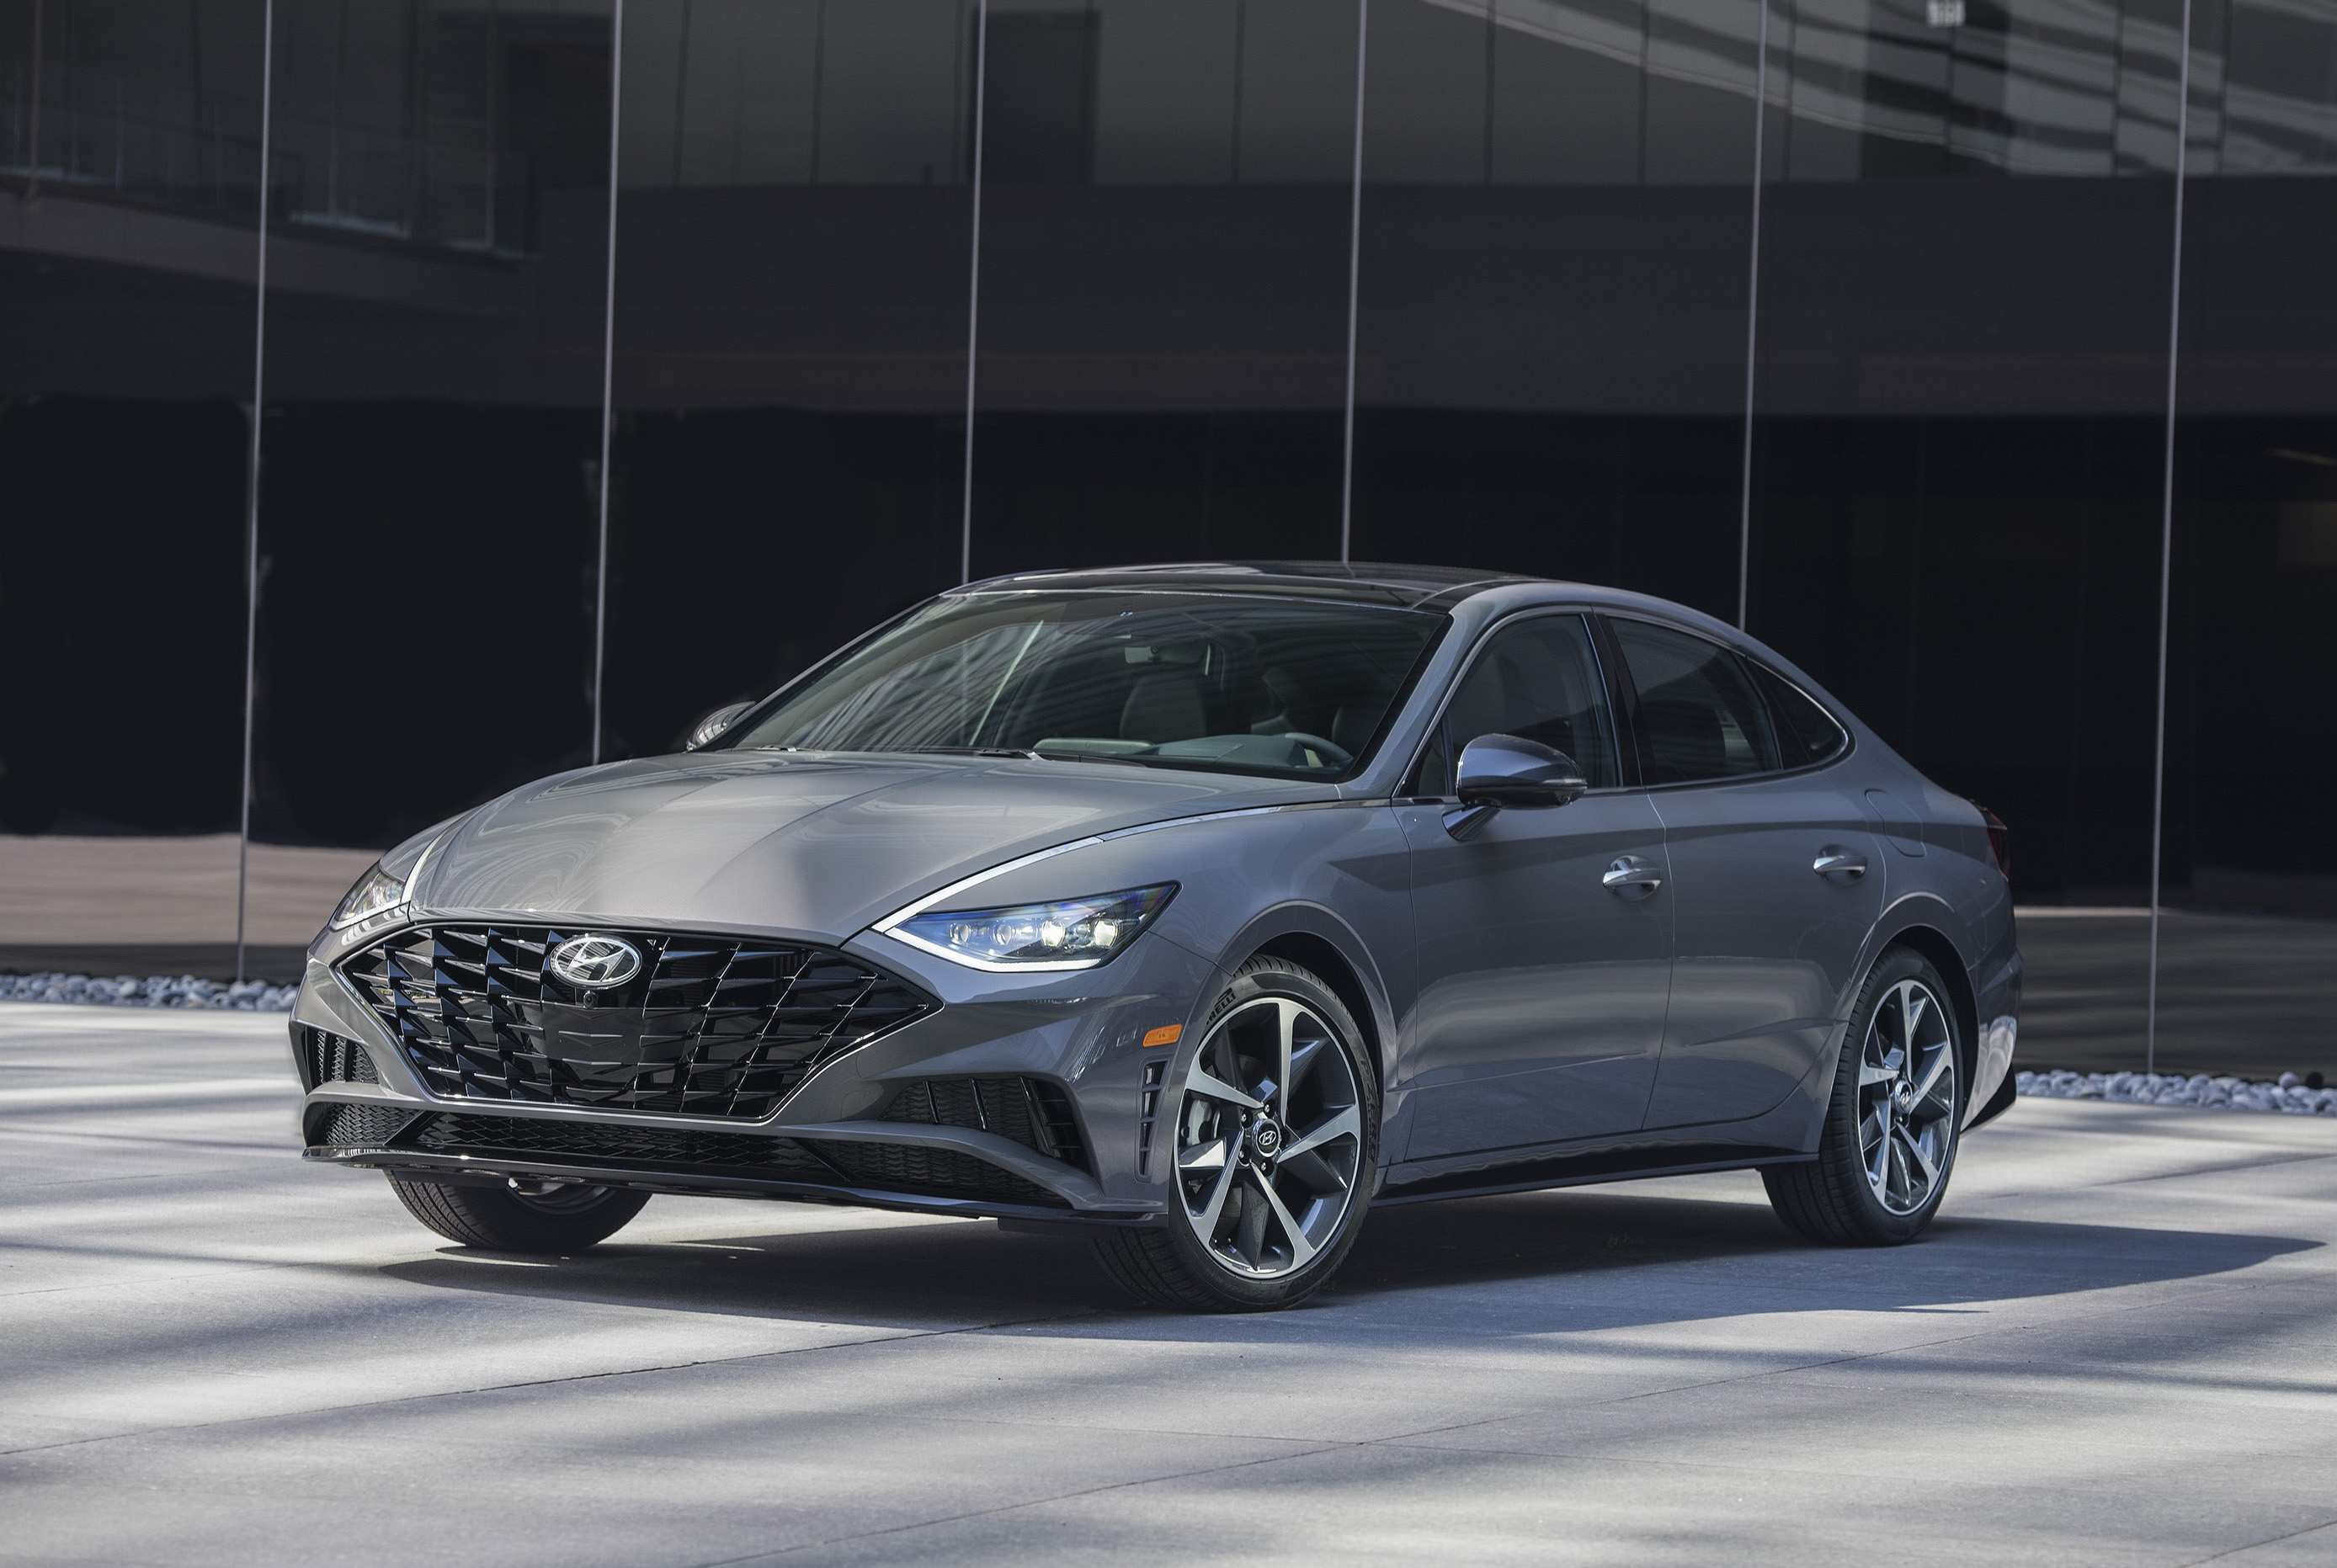 58 The 2020 Hyundai Sonata Build Price